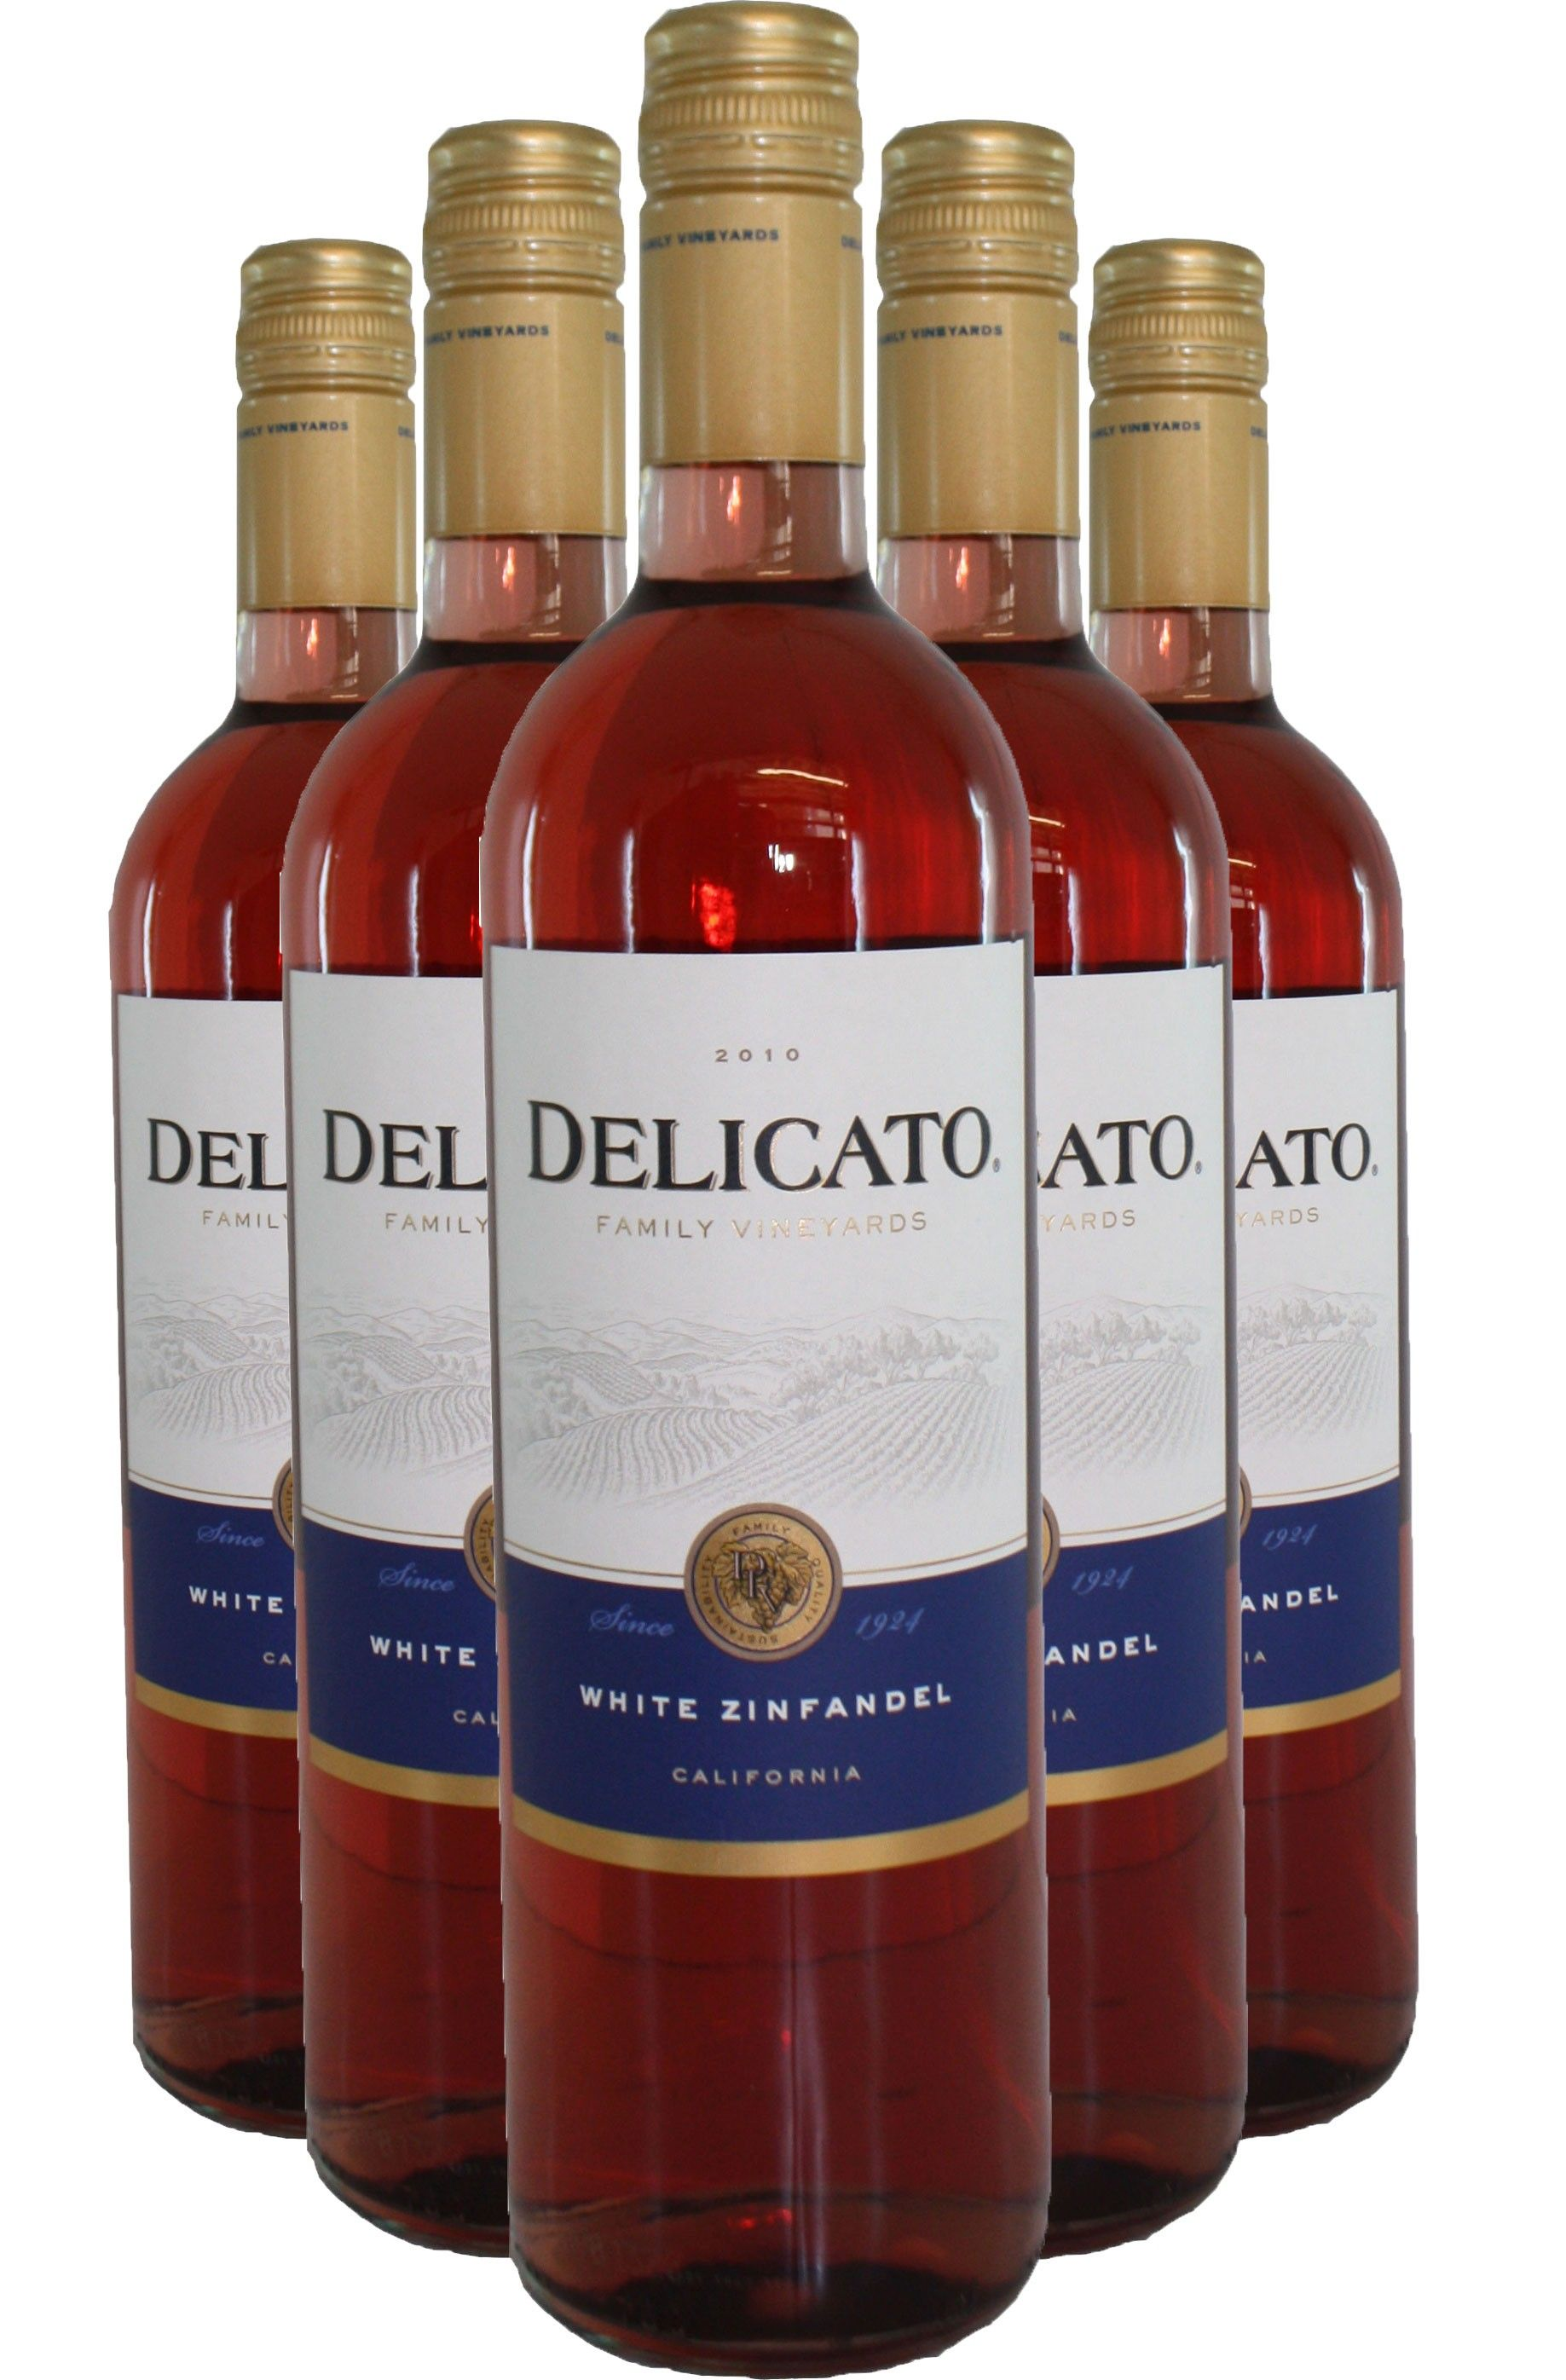 Founded By Gaspare Indelicato In 1924 Delicato Family Vineyards Goal Has Always Been To Grow The Finest Possi Growing Wine Grapes White Zinfandel Premium Wine